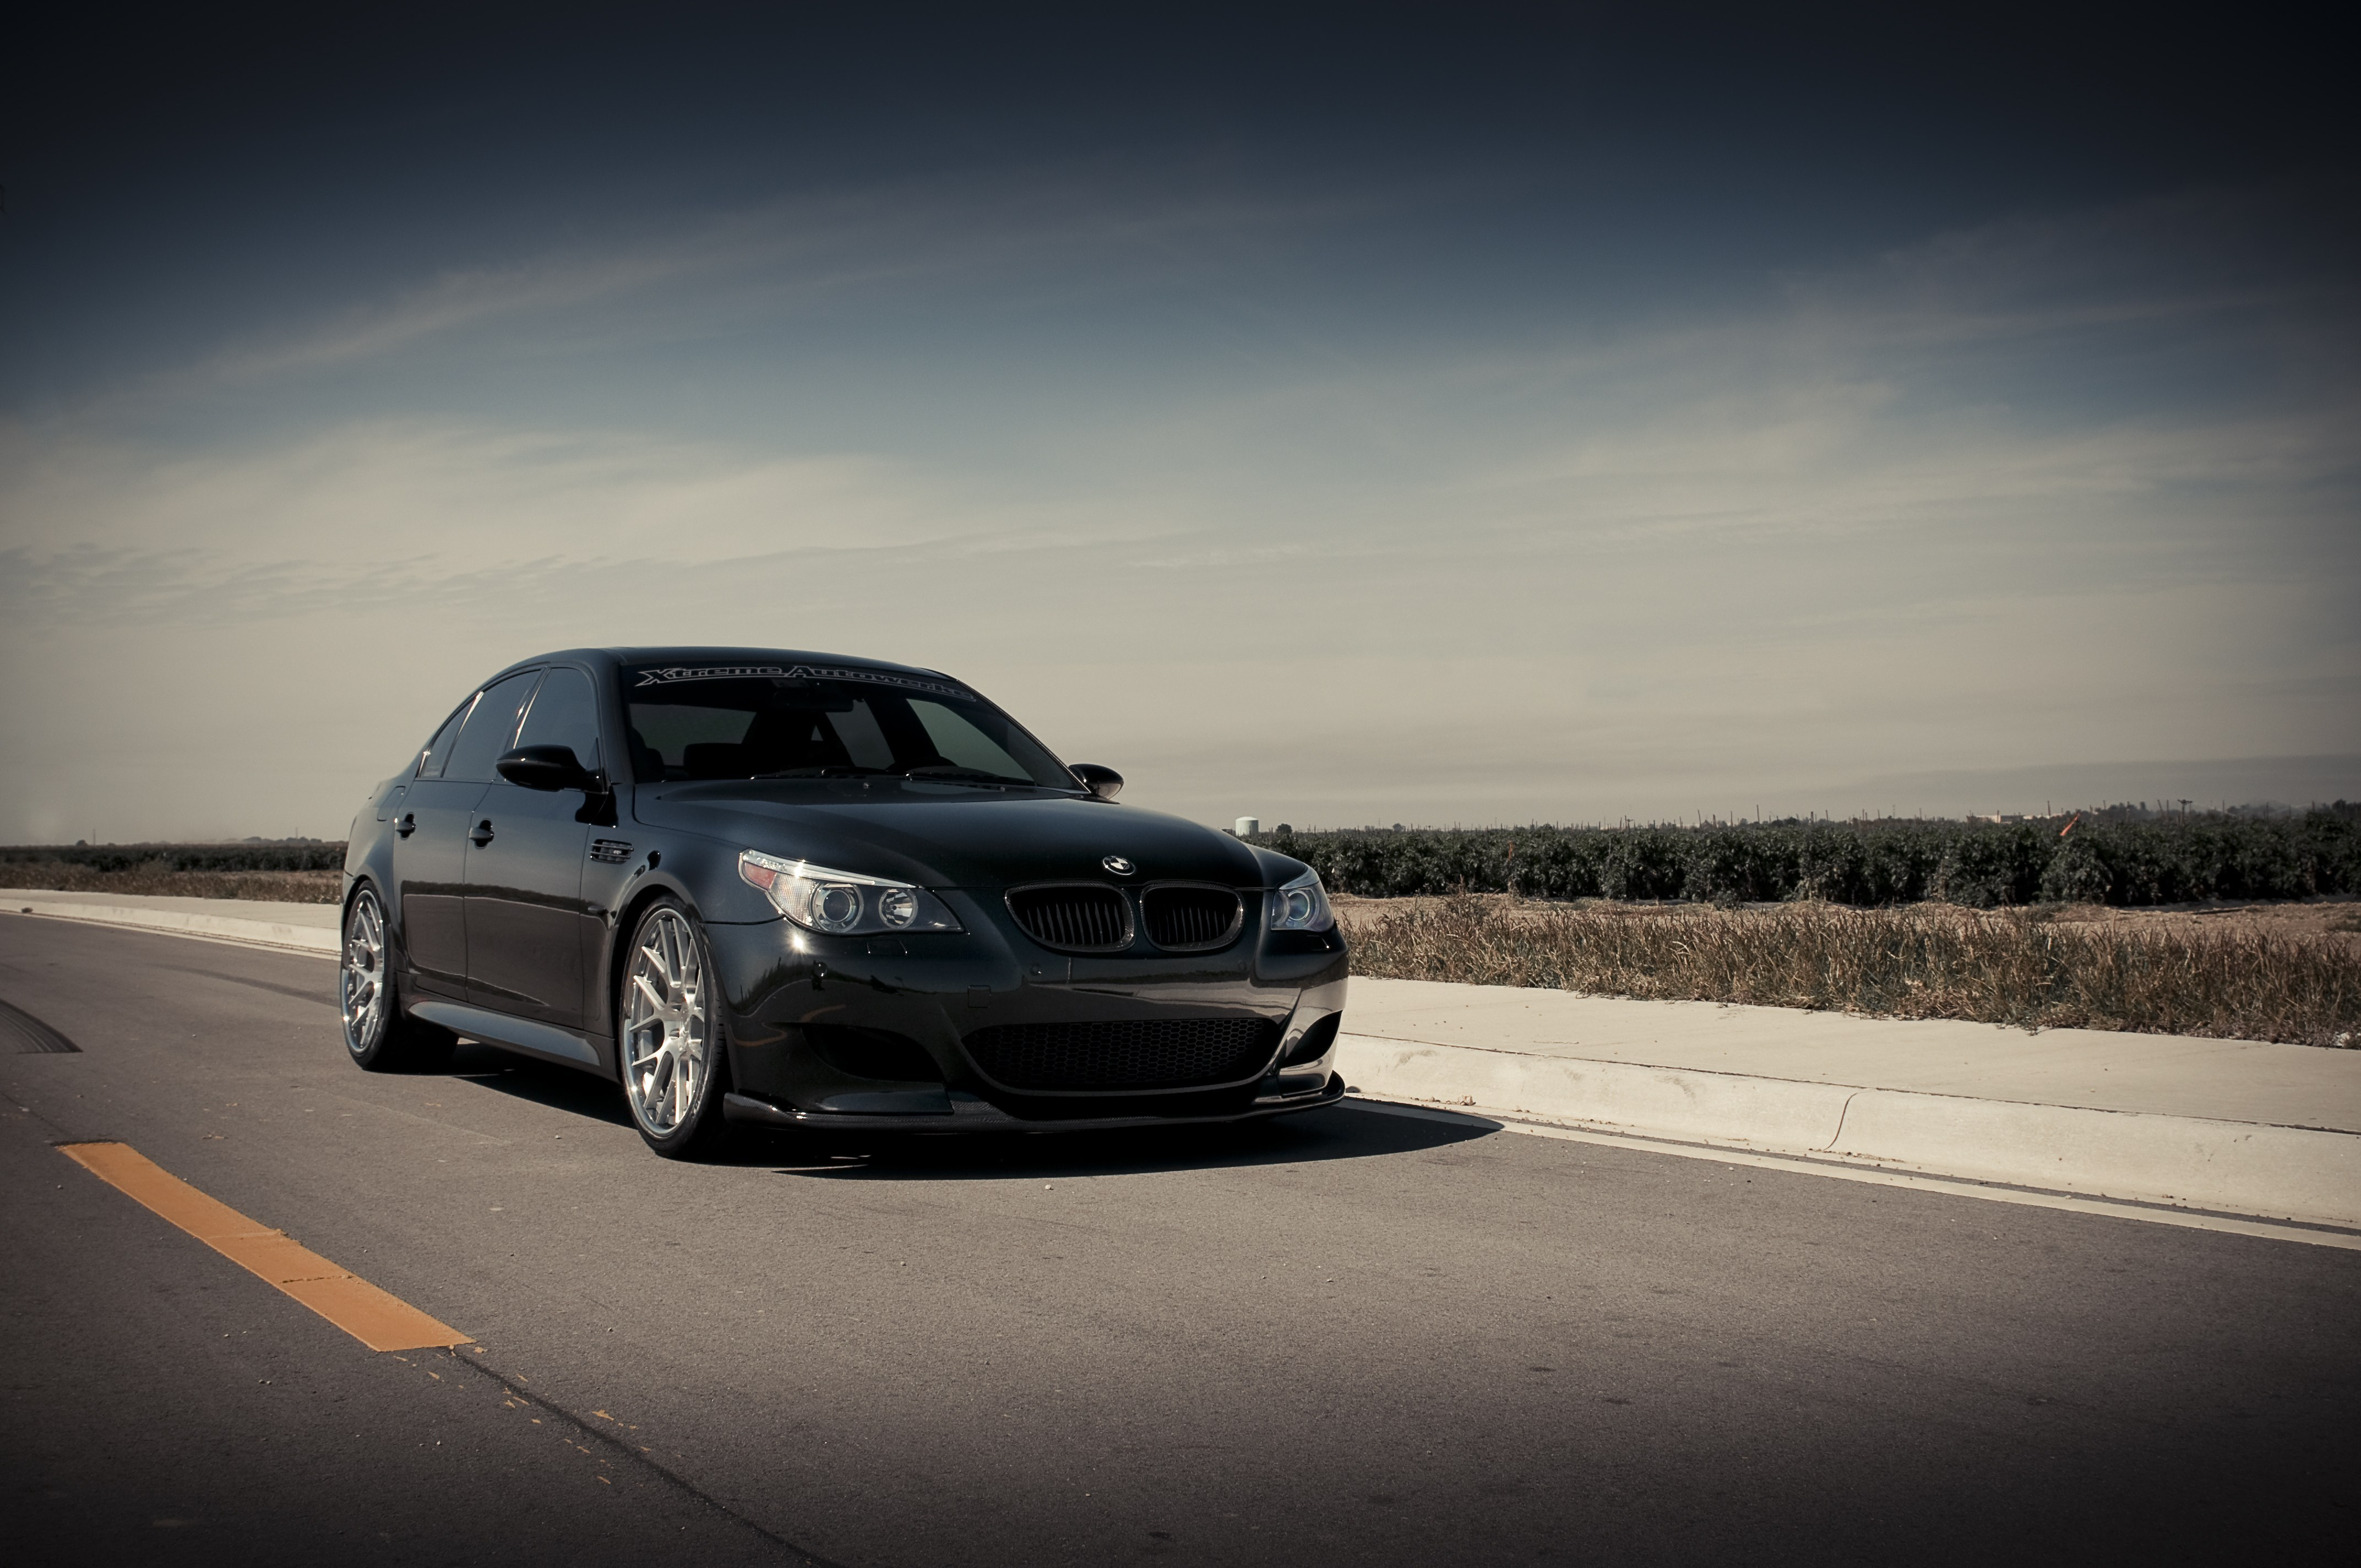 Wallpapers Bmw M5 E60 Black The Front Part Of Sky 4288x2848